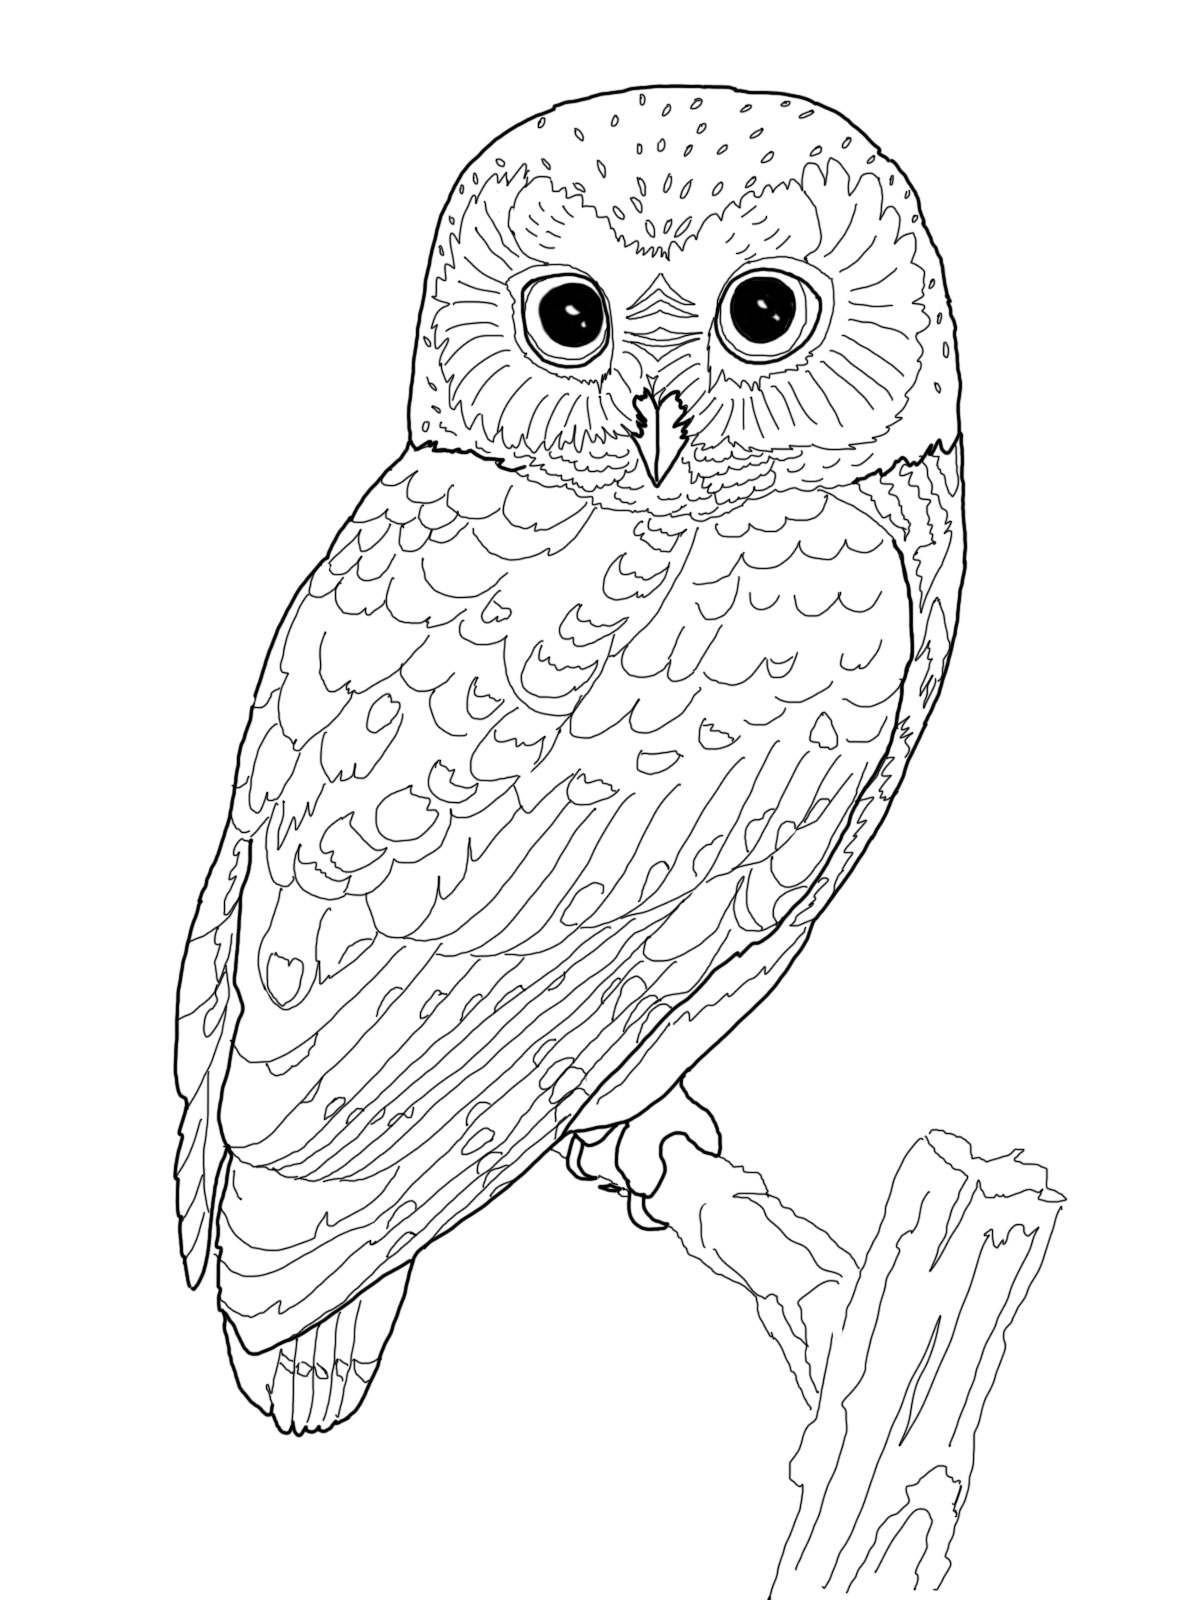 owl colouring pages owl coloring pages for adults free detailed owl coloring colouring pages owl